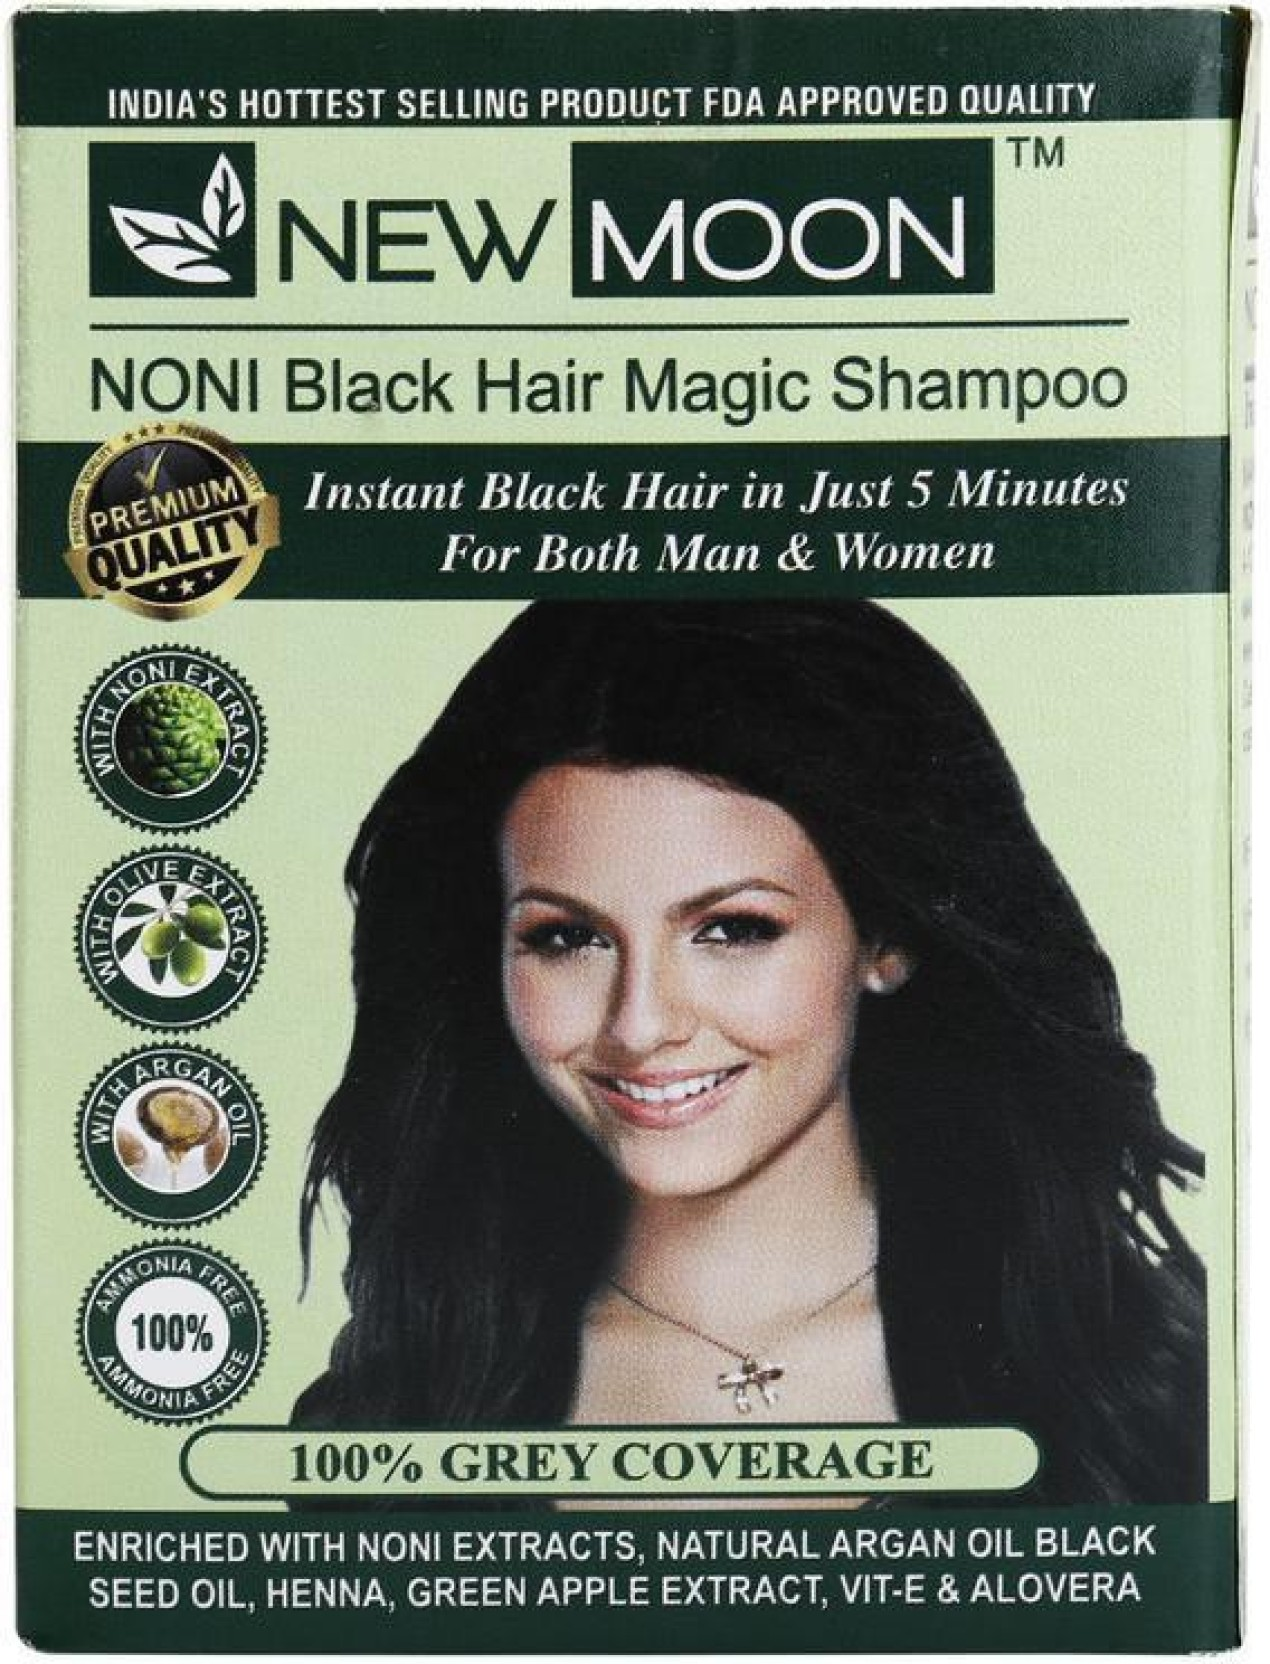 New Moon Noni Black Hair Magic Shampoo Permanent Hair Color (Green)